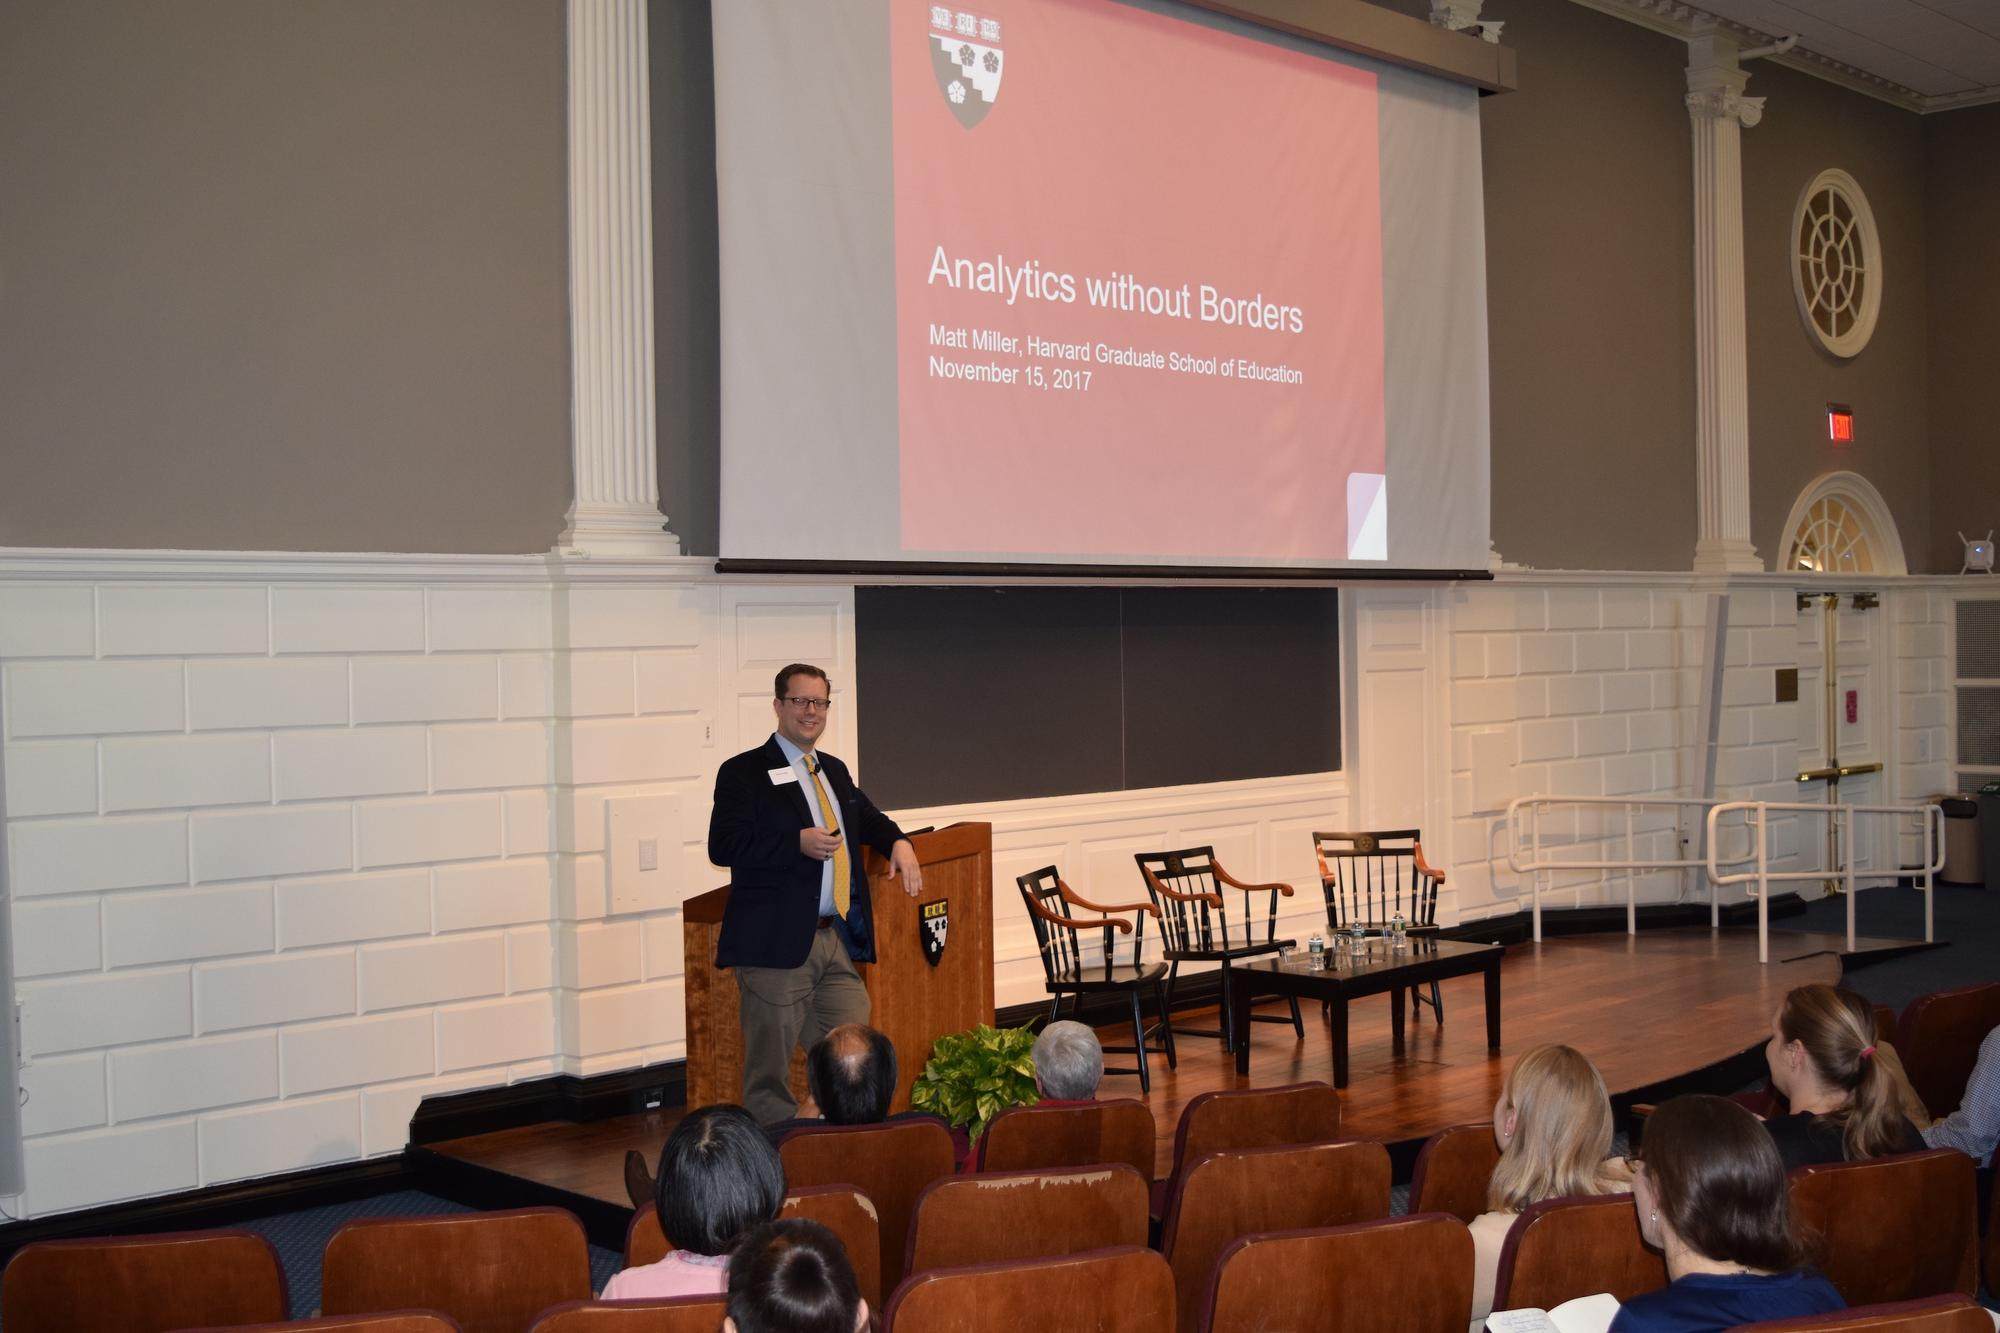 Matthew Miller, Associate Dean for Learning and Teaching, Lecturer on Education